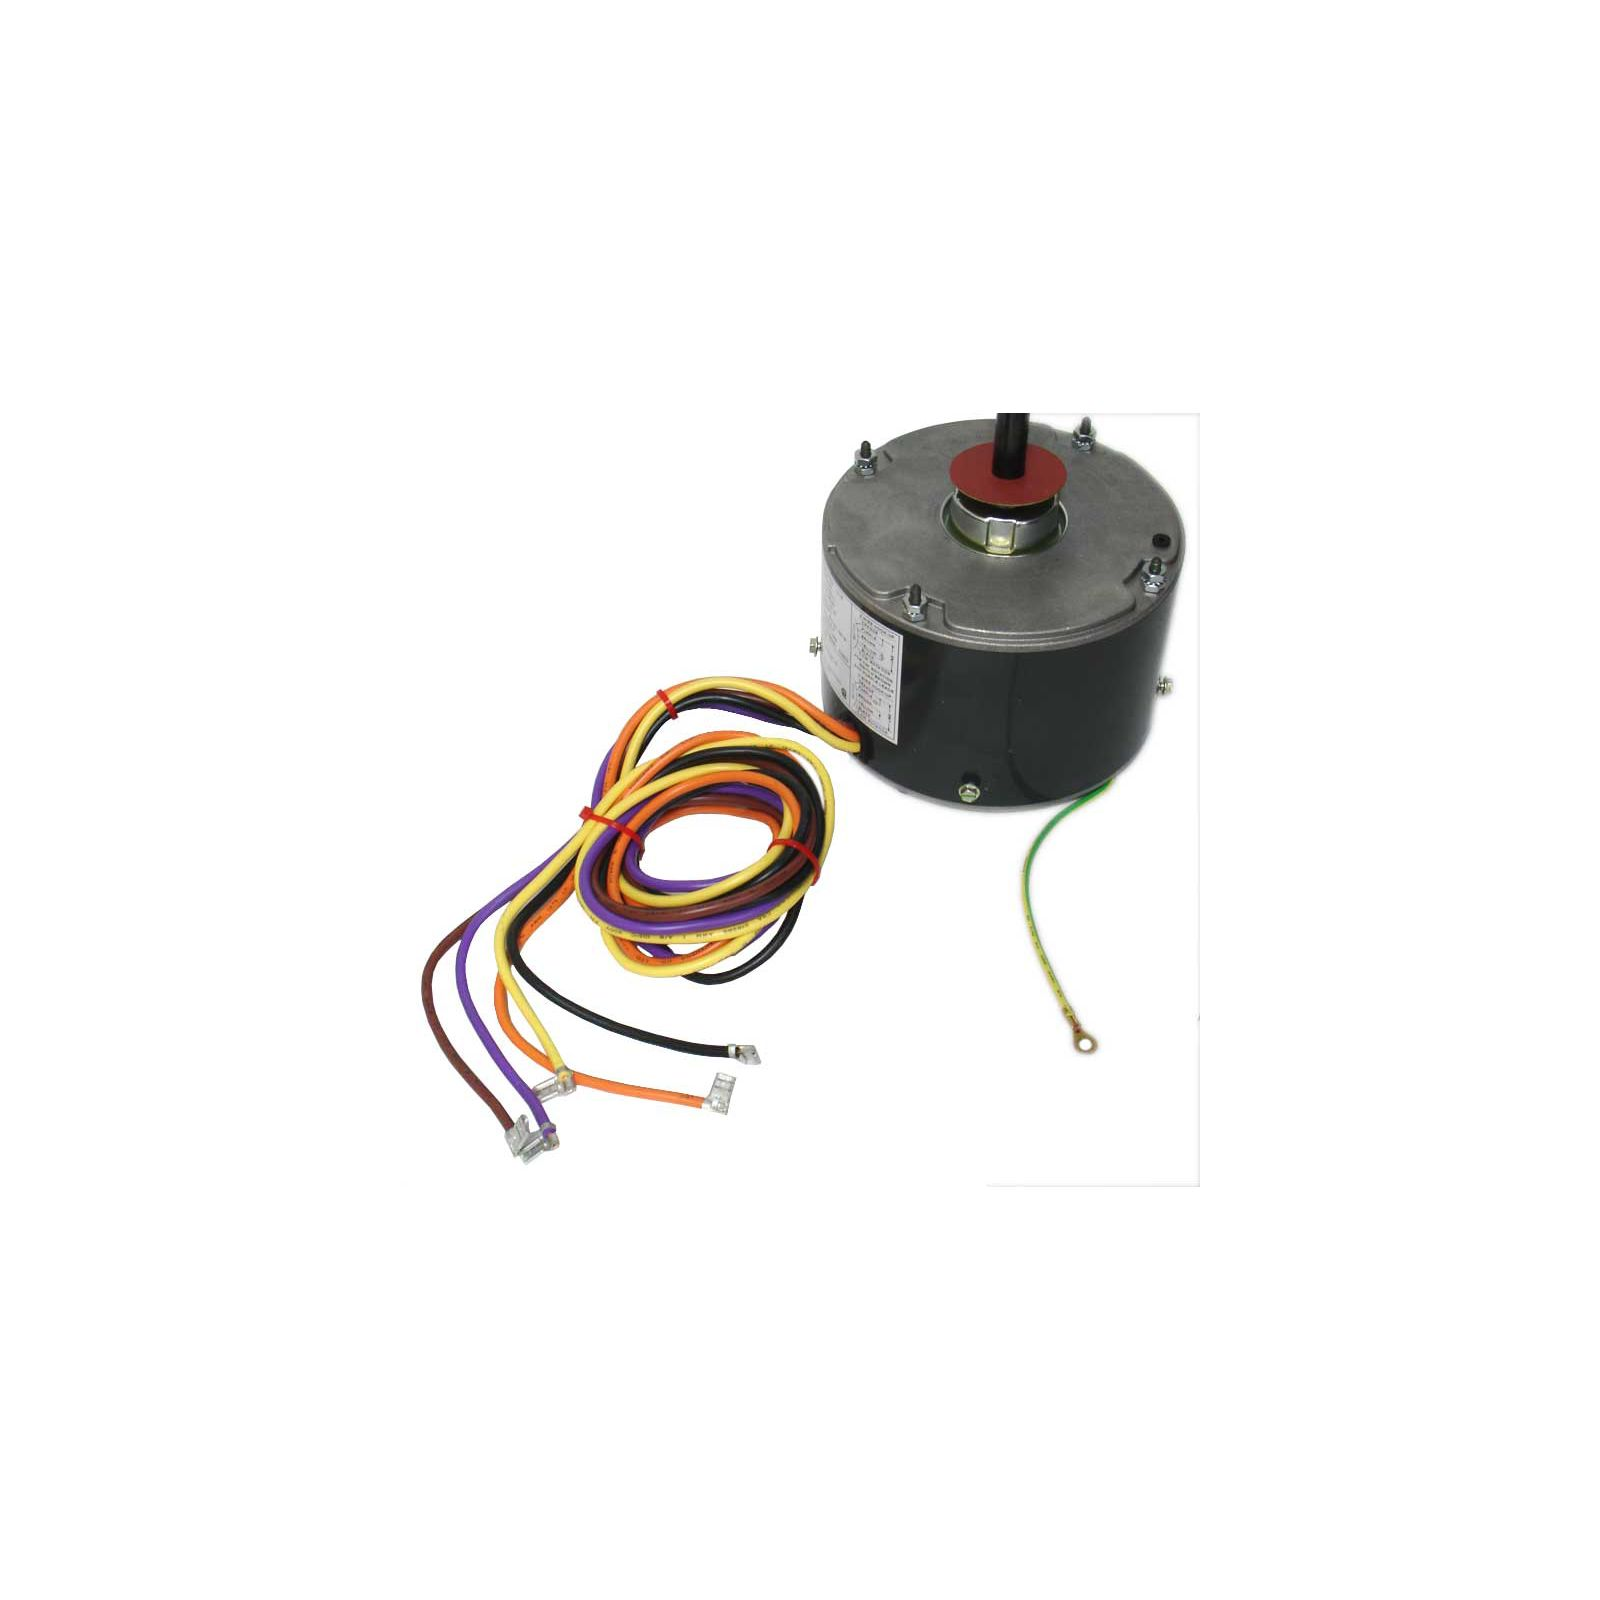 Protech 51 23055 11 Condenser Motor 1 5 Hp 208 230 60 1075 Ruud Wiring Diagram 024jaz Upmc View Full Size In New Tab